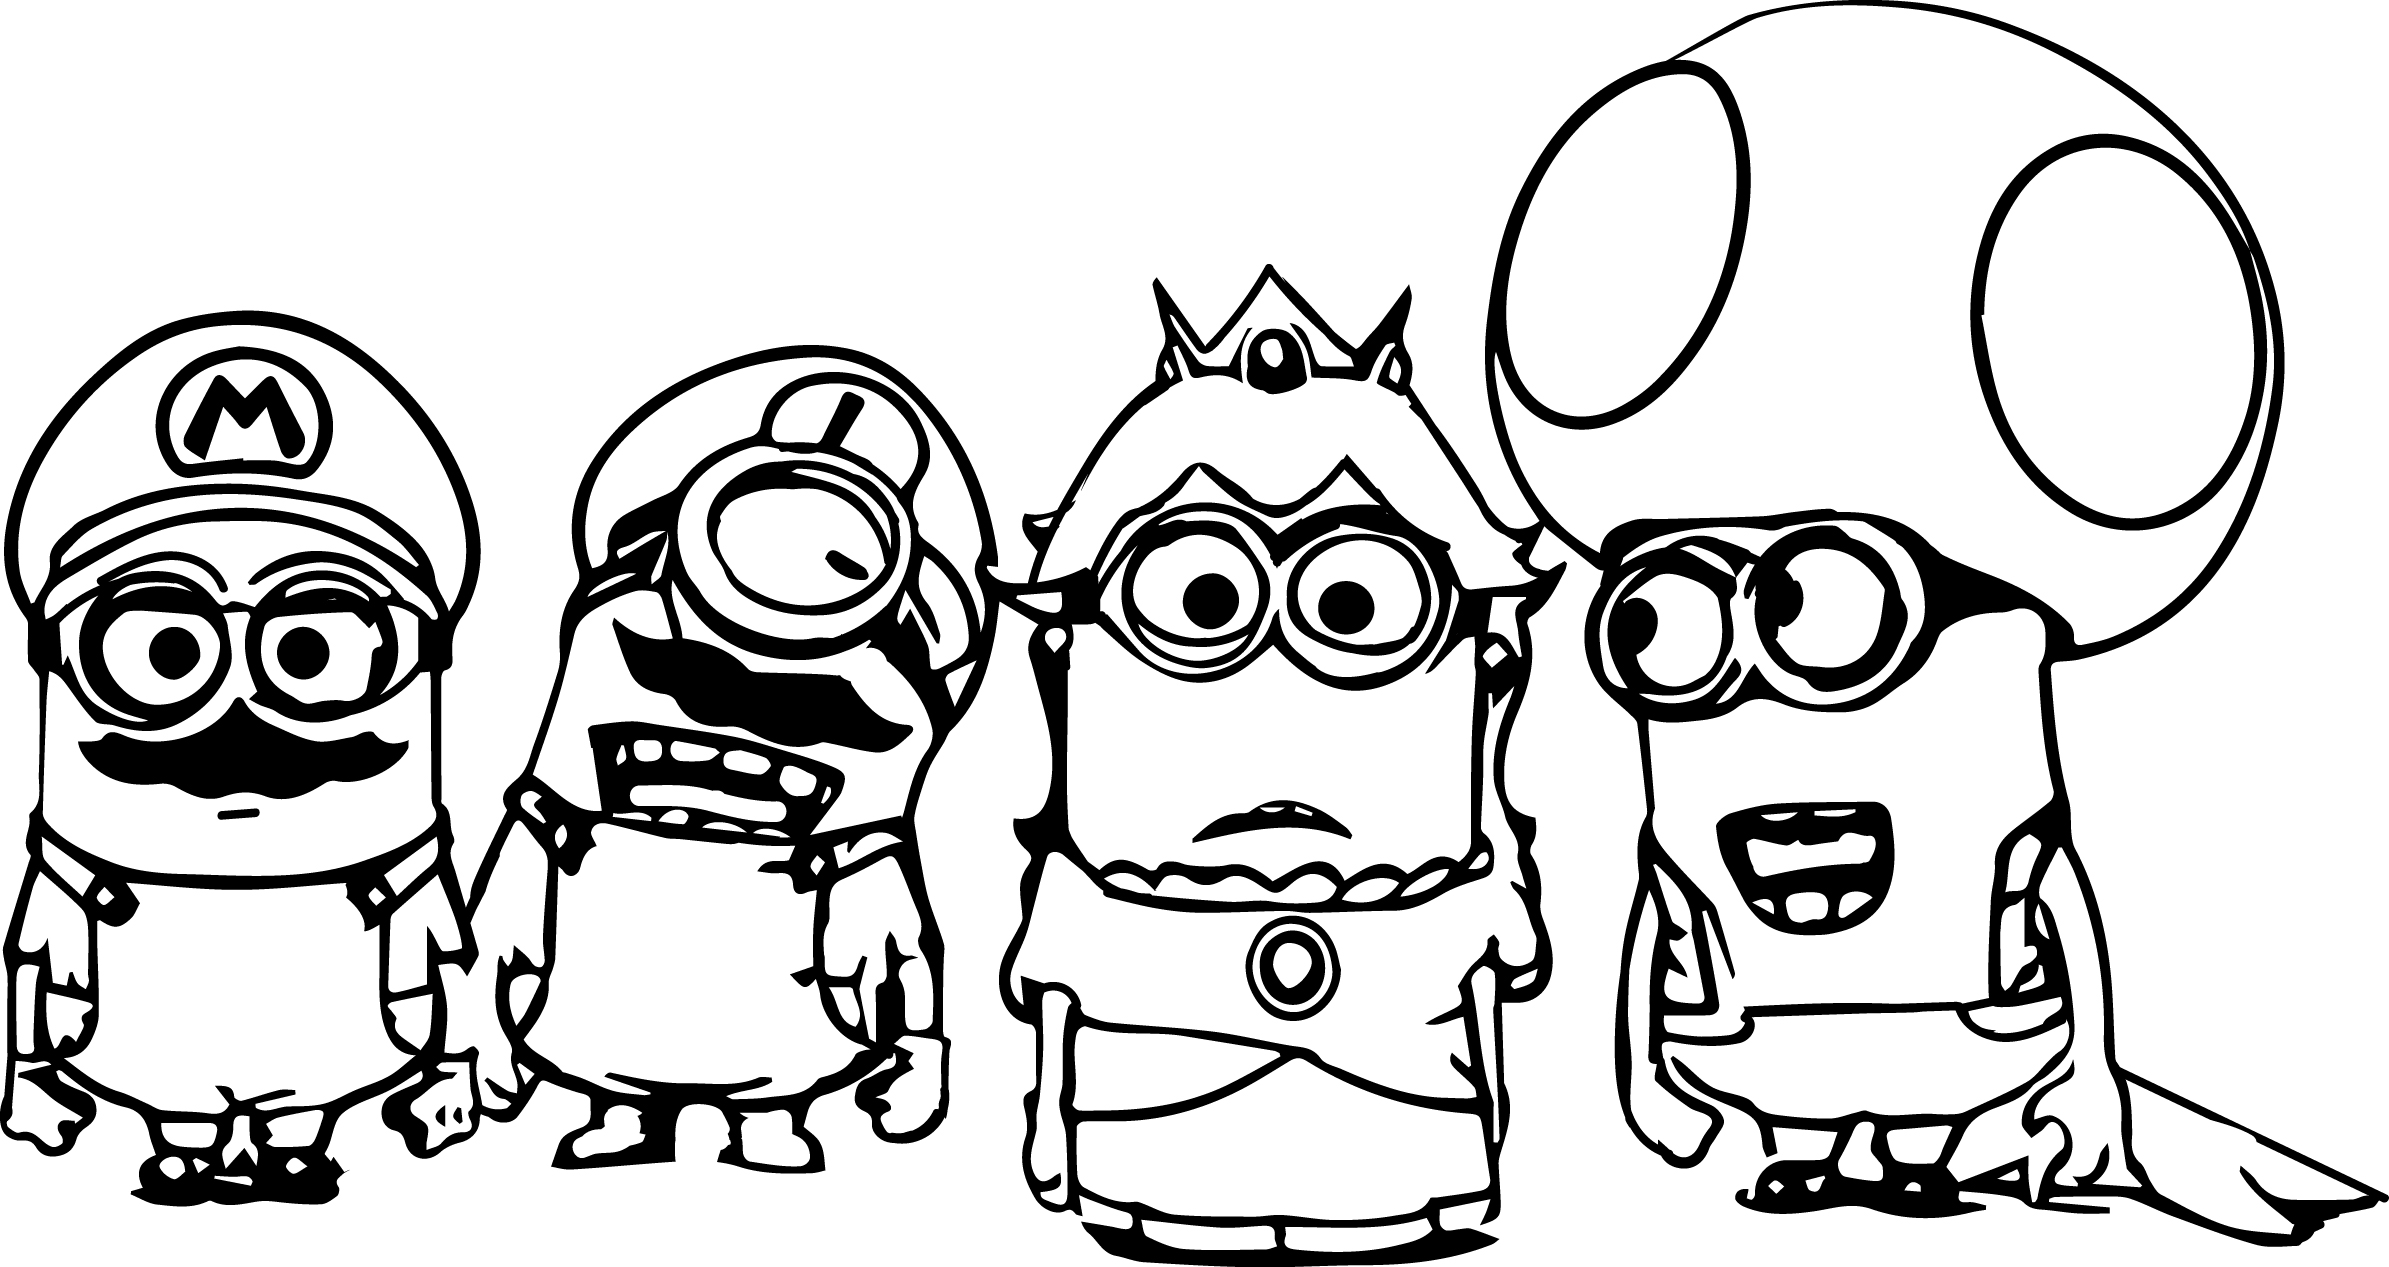 coloring pictures of minions minion coloring pages best coloring pages for kids of coloring minions pictures